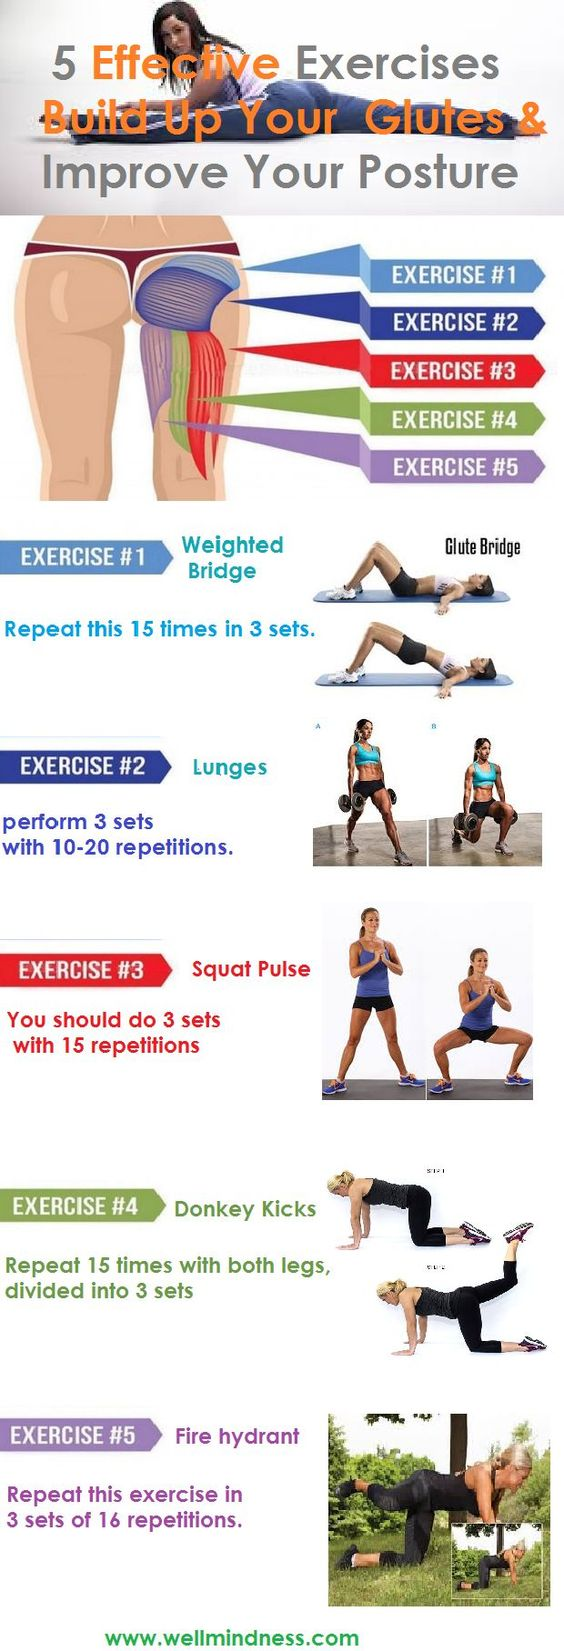 By strengthening the glutes, you will be able to perform high-intensity activities and exercises, and they will also be extremely helpful for various sports and running....: